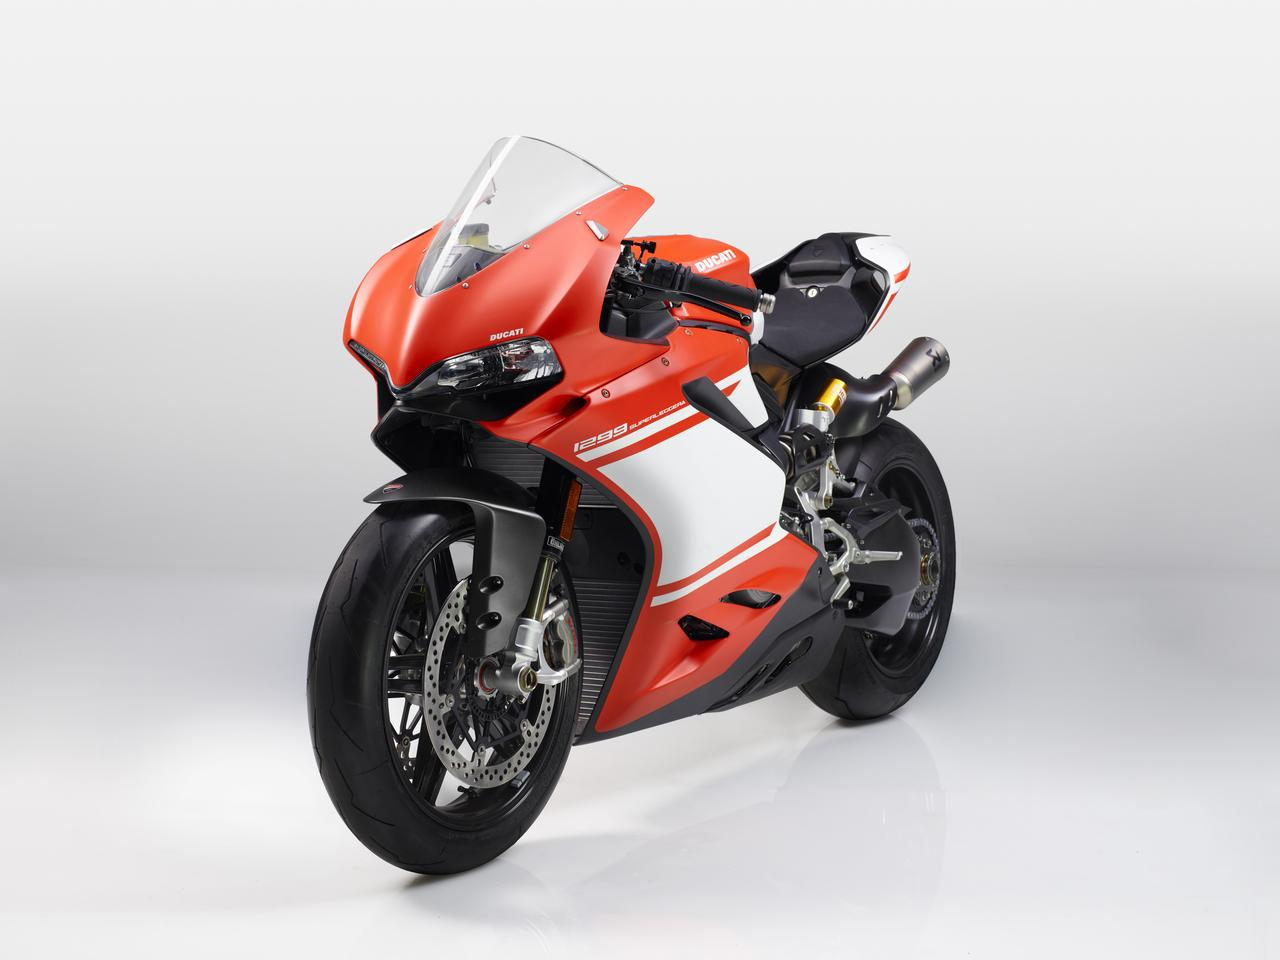 Ducati 1299 Superleggera: 156 kg and 215 horsepower is a very potent combination of numbers